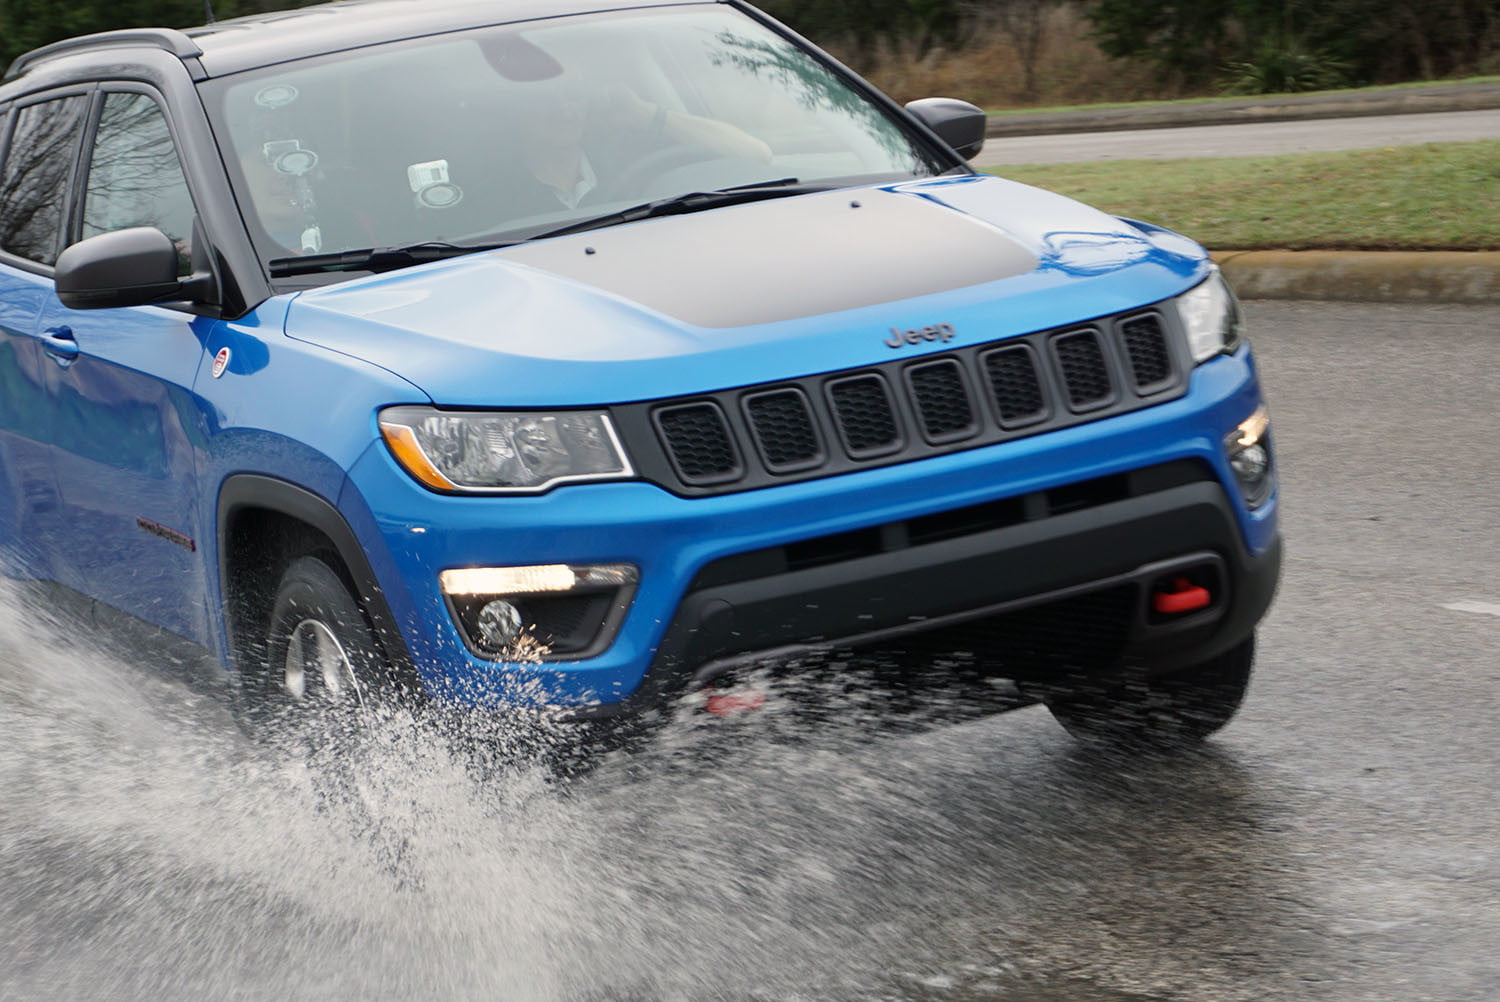 2017 jeep compass review: best compact suv on market? | digital trends